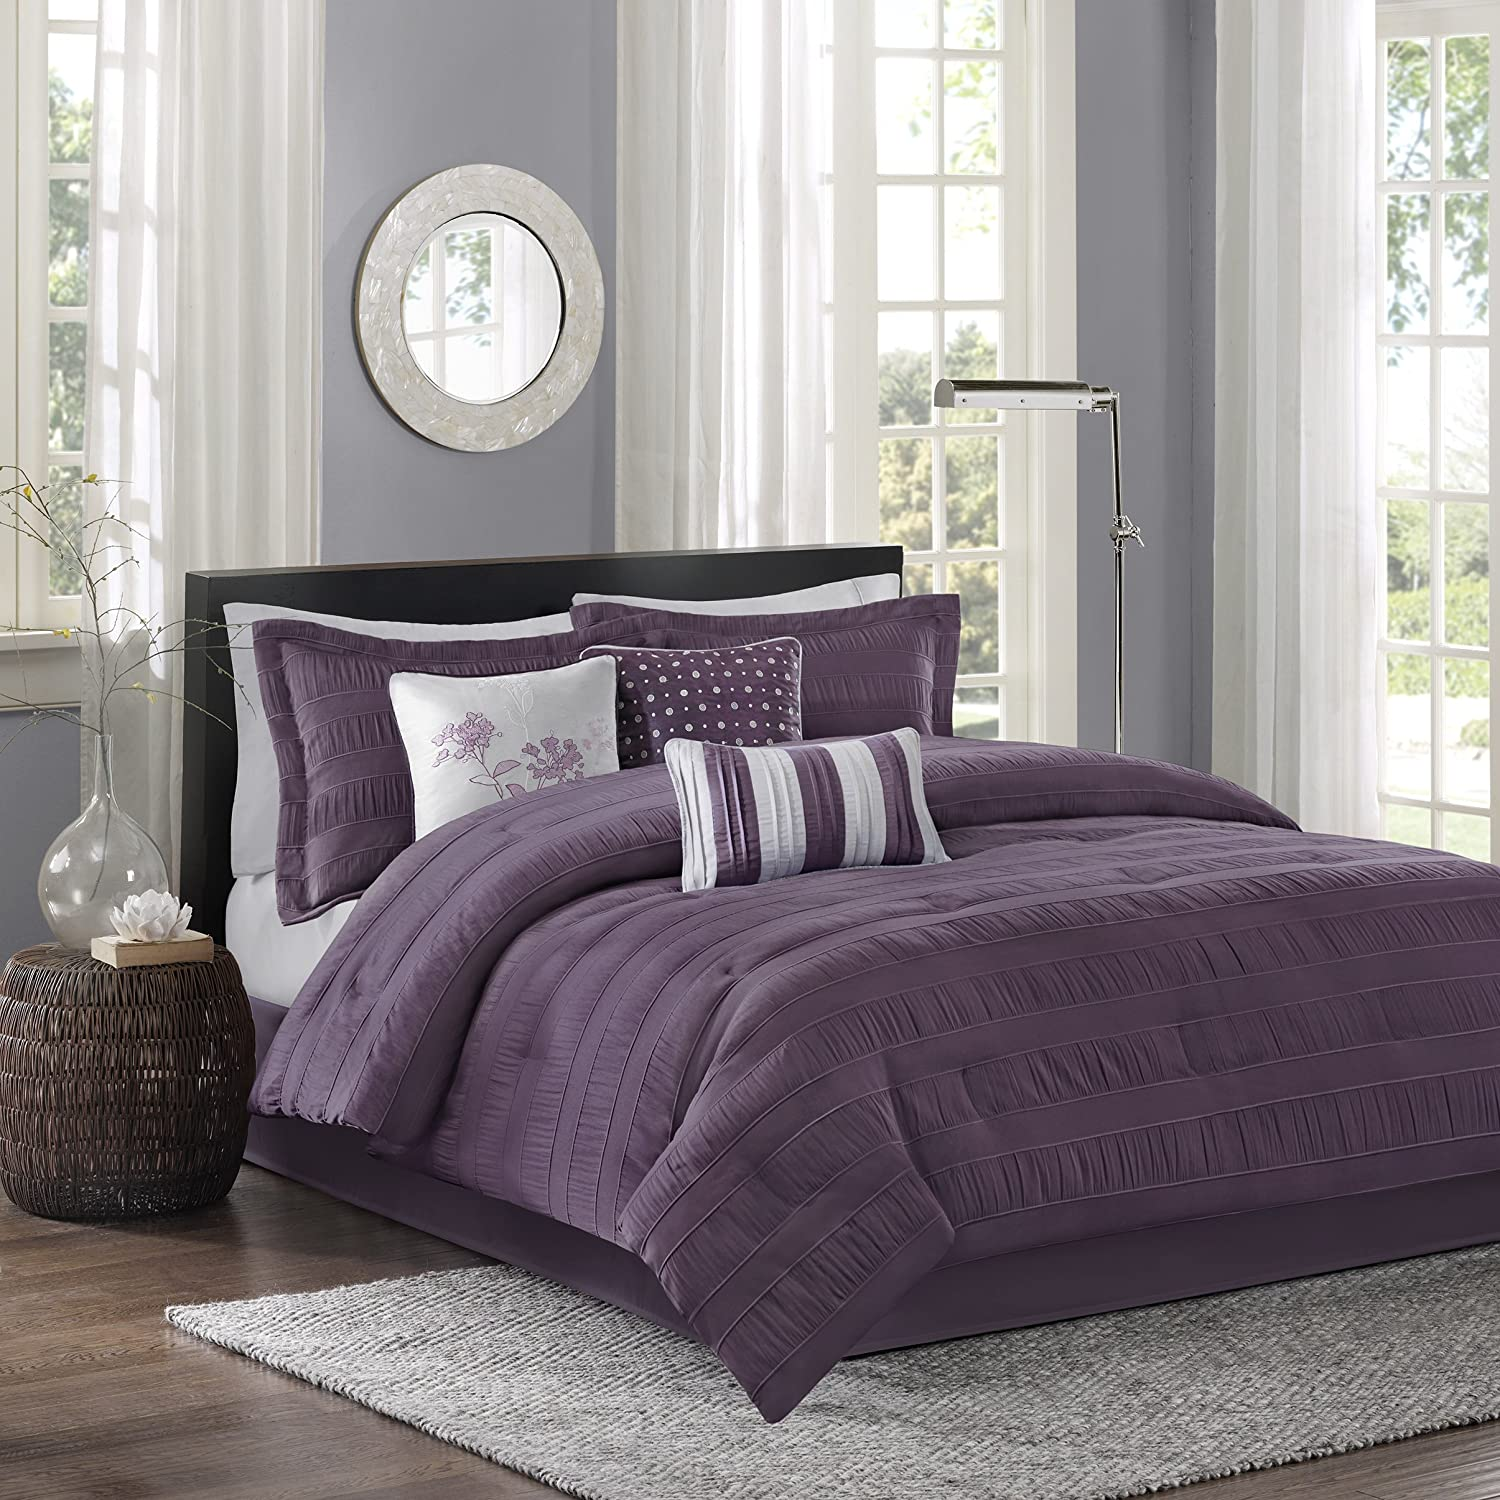 purple product bedding today shipping comforter bath abby overstock mi set zone sets free